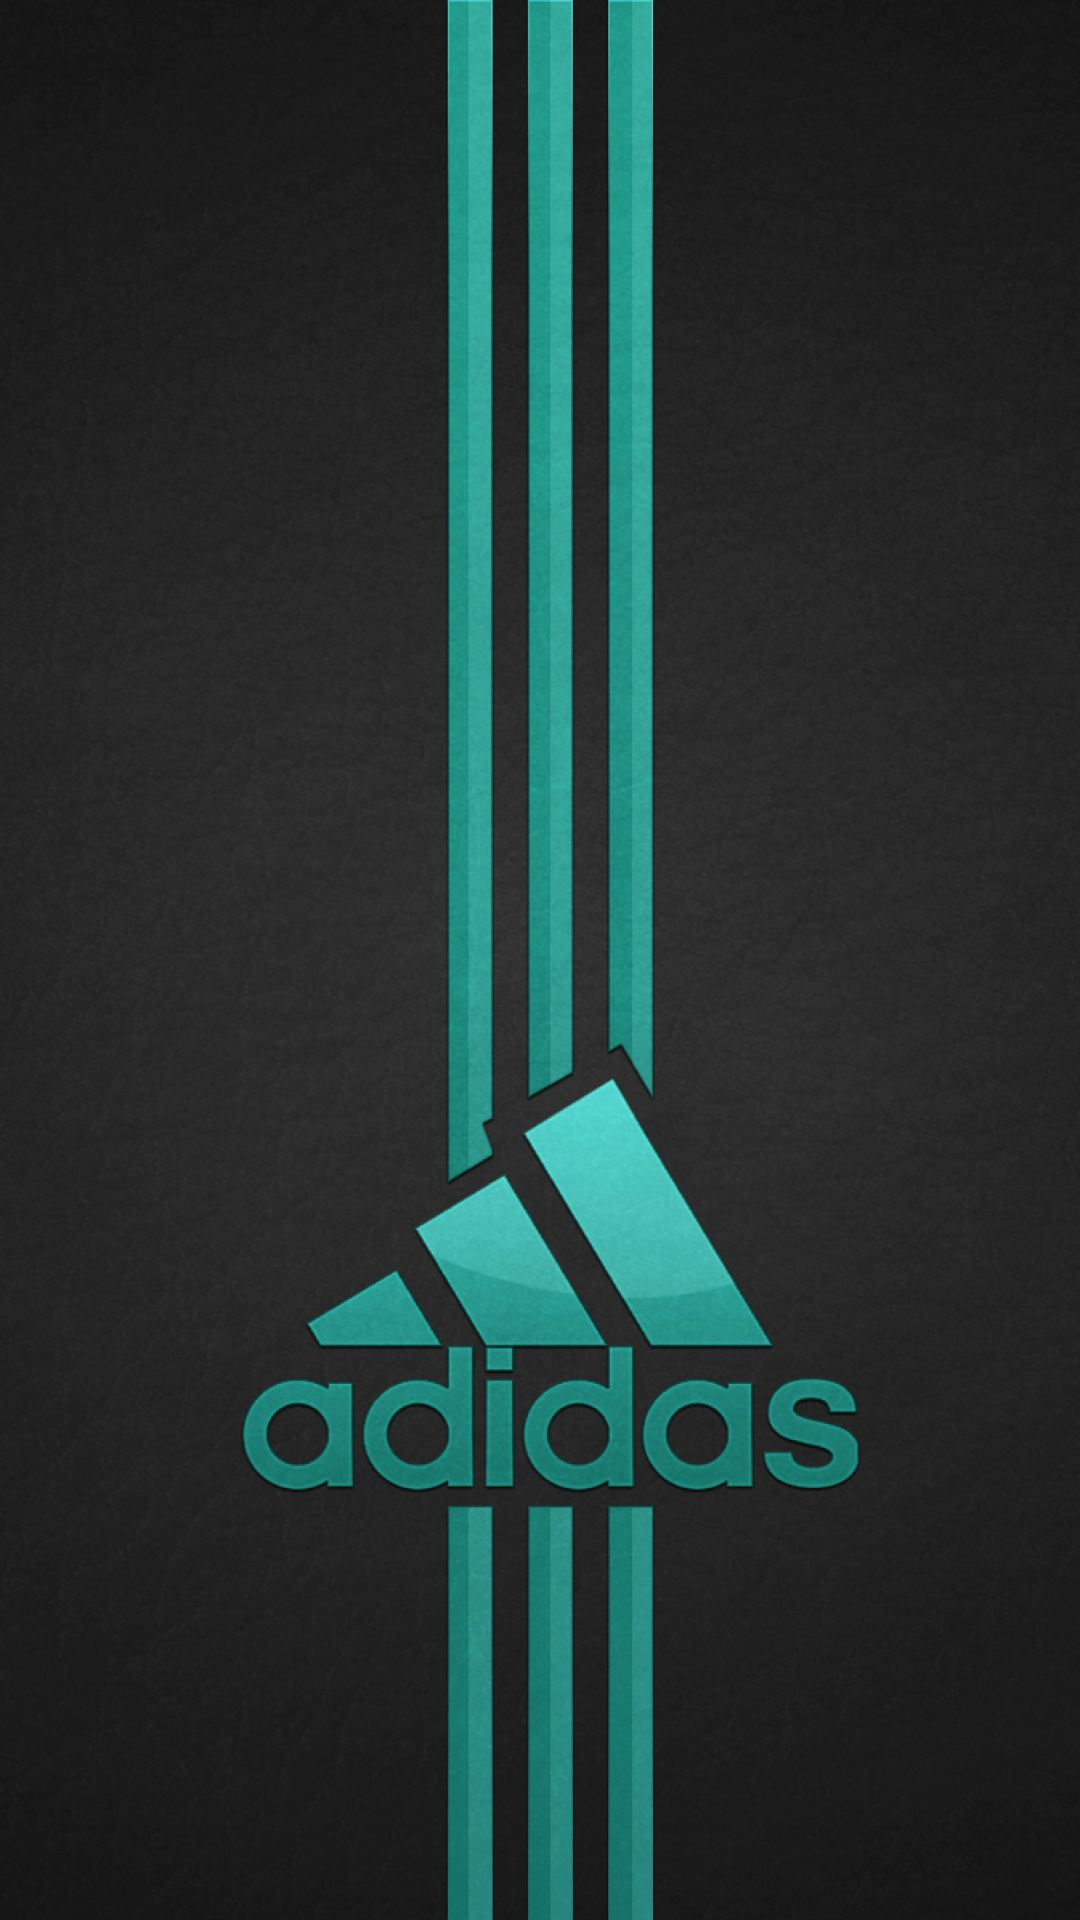 Adidas Iphone Wallpapers Top Free Adidas Iphone